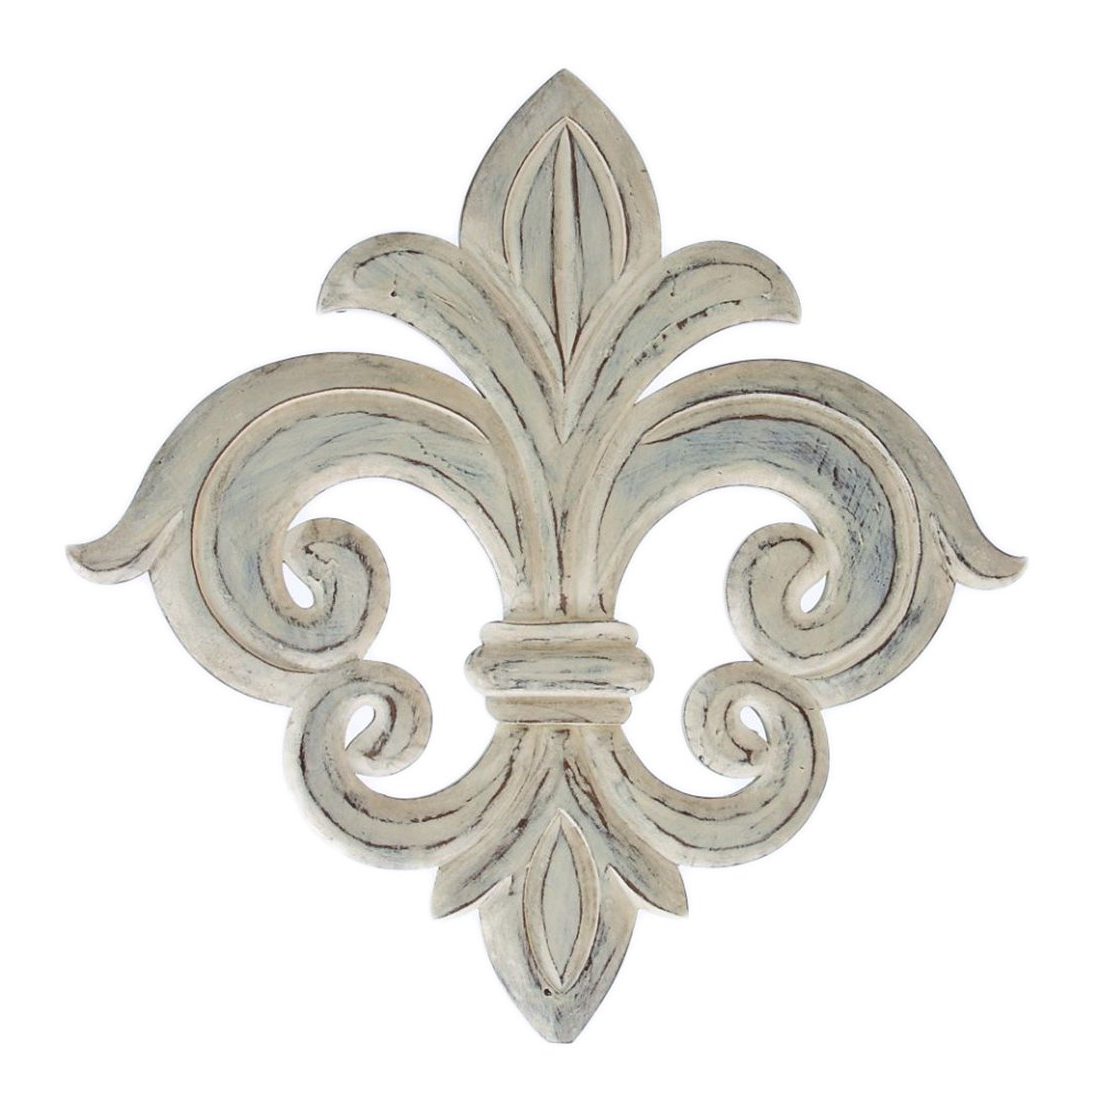 Most Popular Amazon: Fleur De Lis Wall Décor: Home & Kitchen With 2 Piece Metal Wall Decor Sets By Fleur De Lis Living (View 14 of 20)